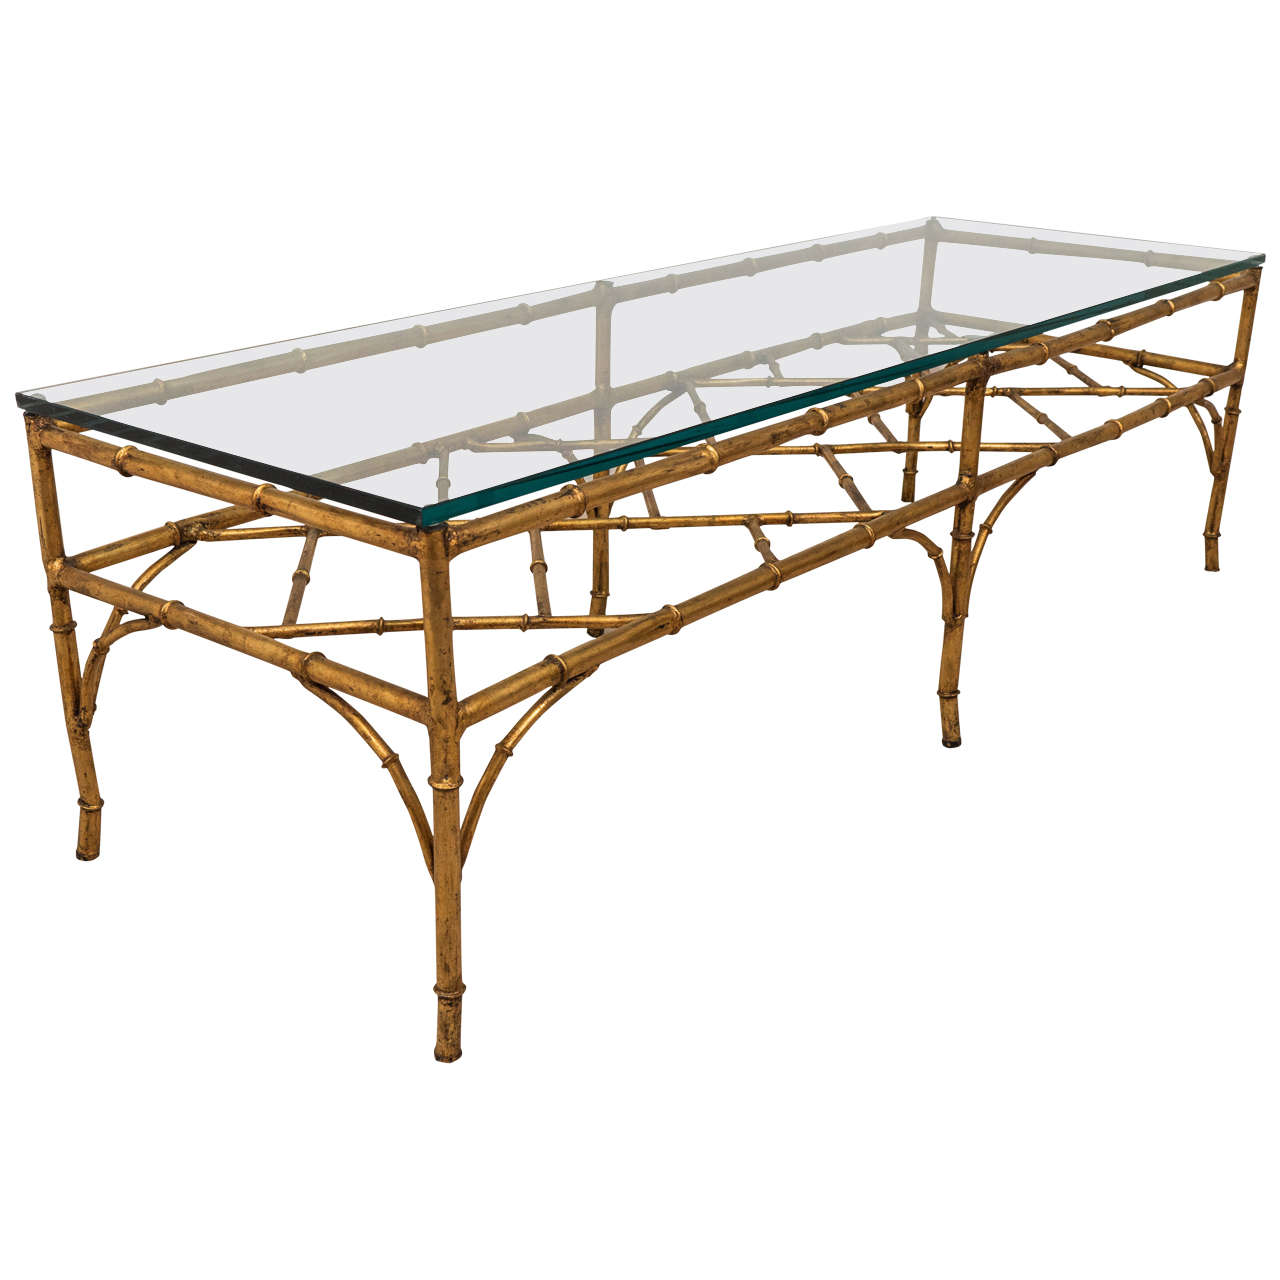 Brass Faux Bamboo Coffee Table: A Midcentury Faux Bamboo Gilded Metal Coffee Table With